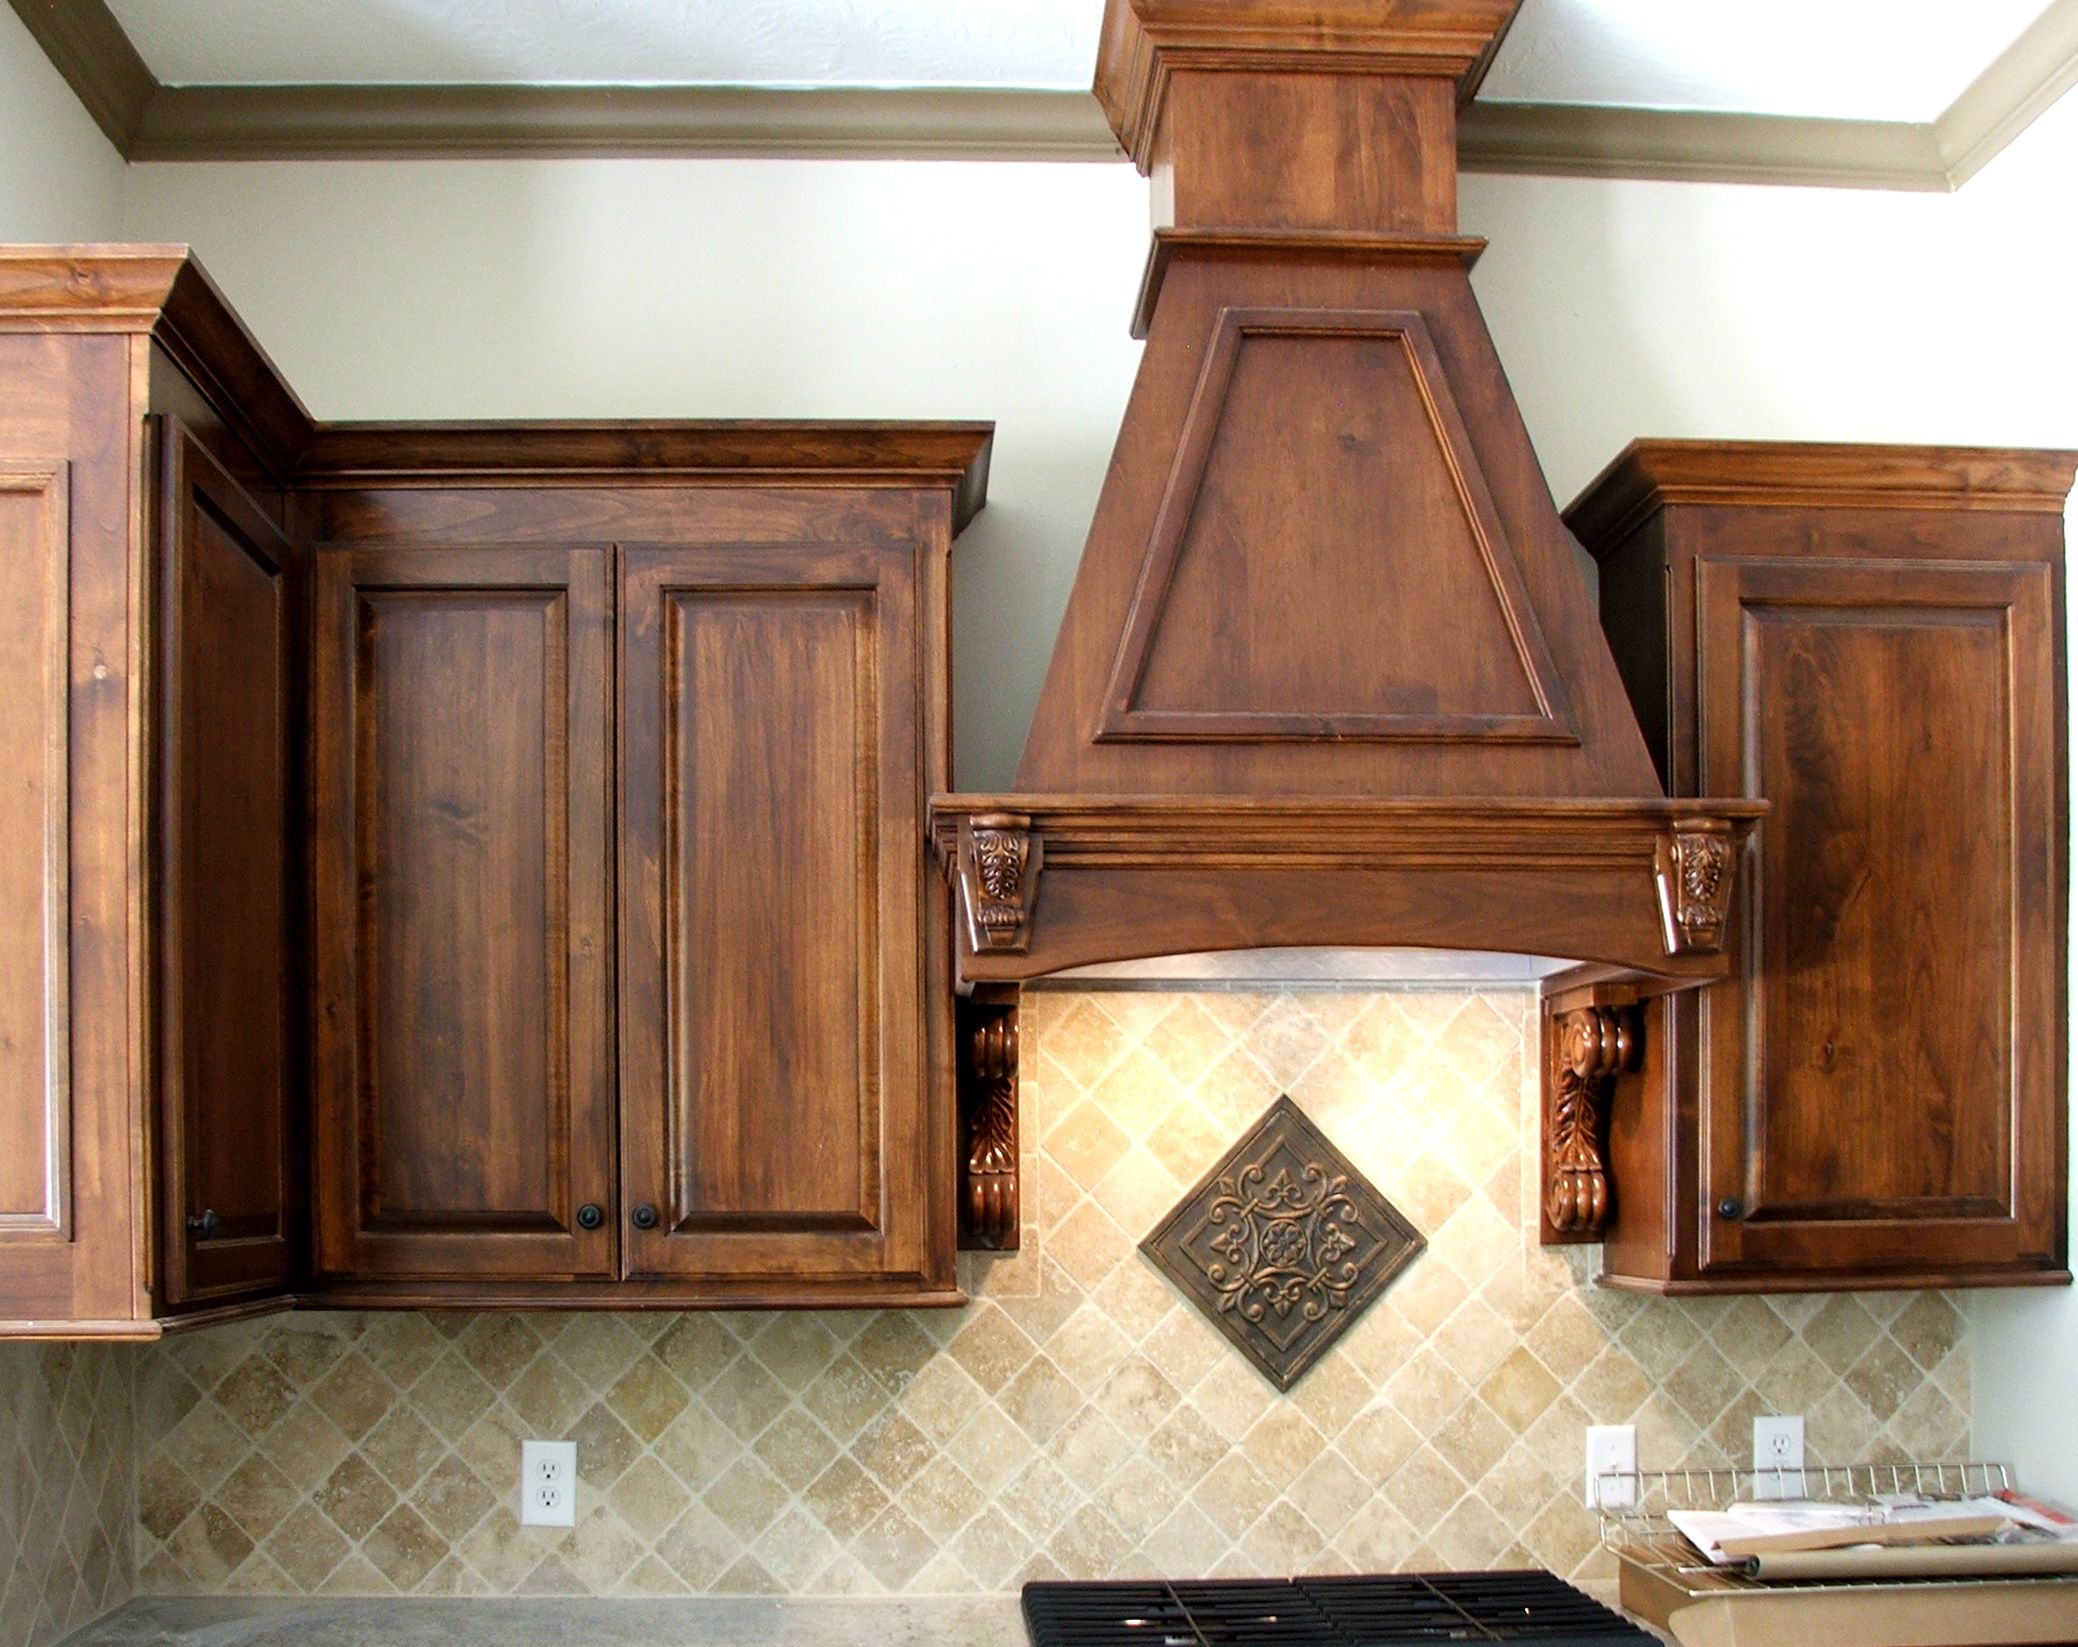 Knotty Hickory Cabinets Perhaps I Could Use A Gel Stain To